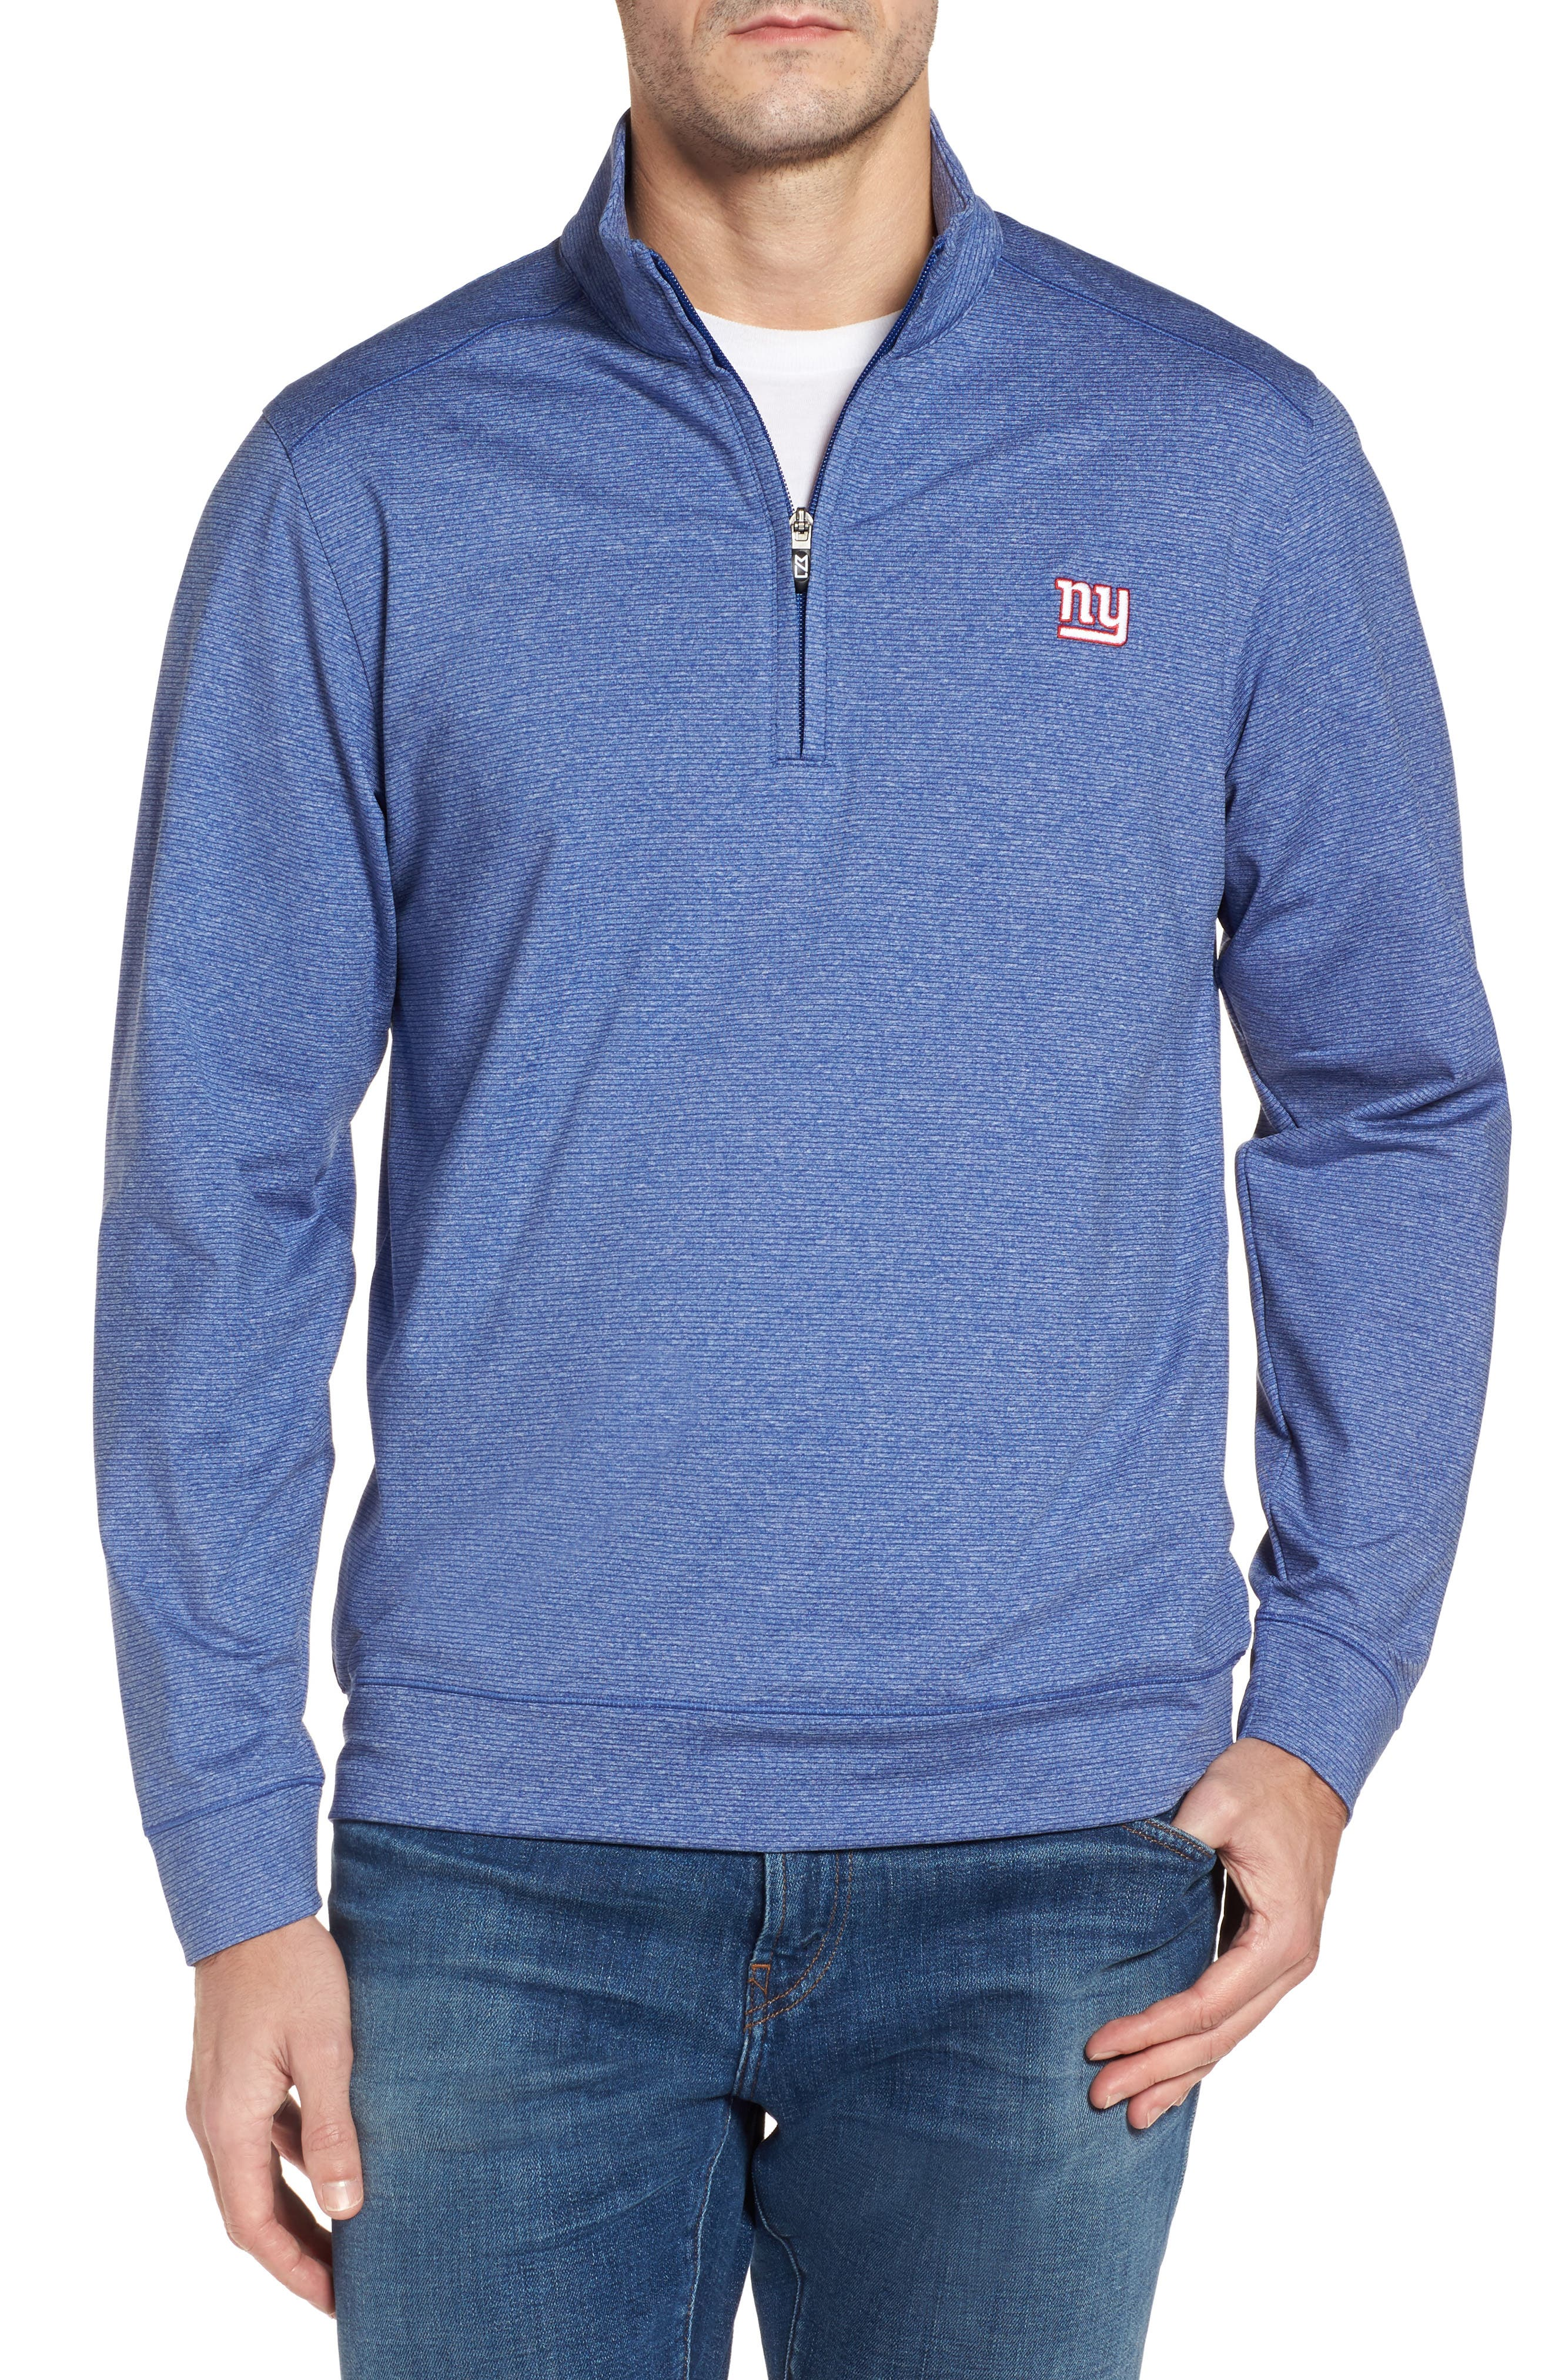 Shoreline - New York Giants Half Zip Pullover,                         Main,                         color, Tour Blue Heather